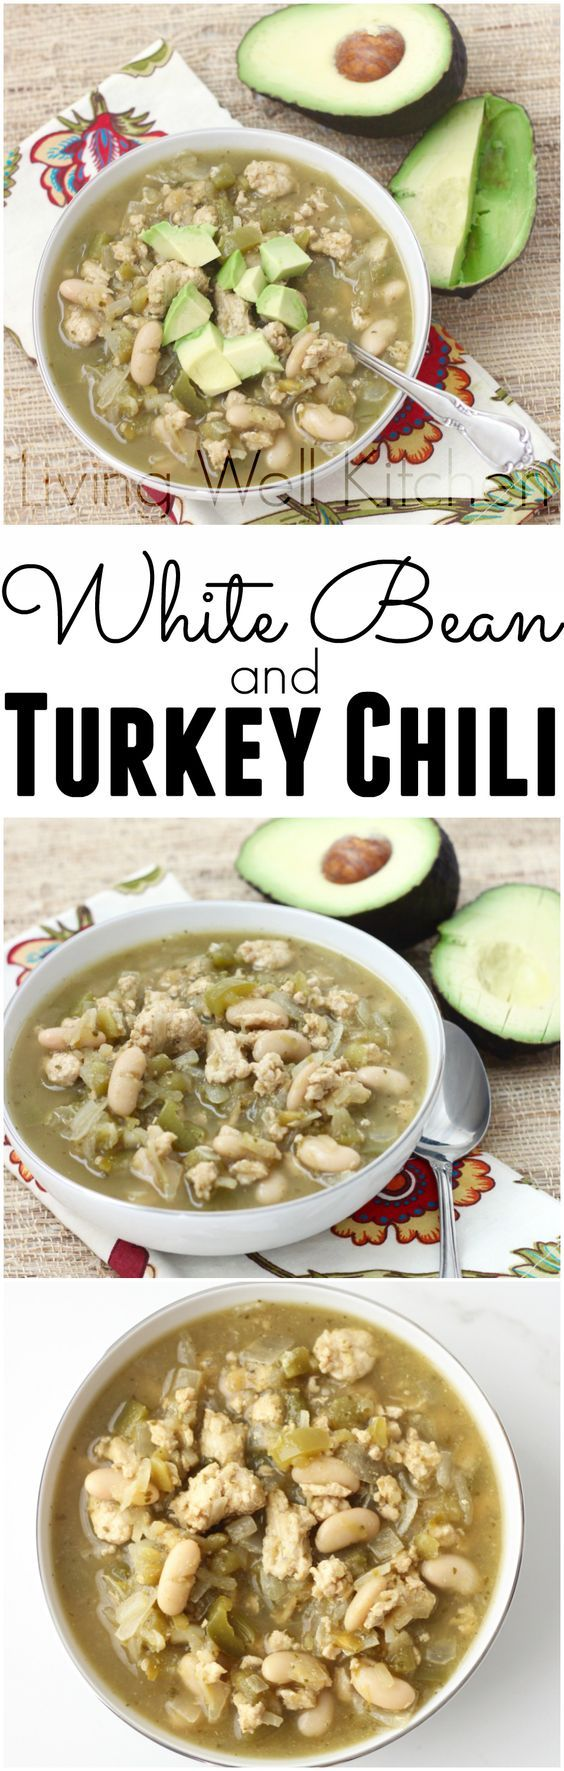 White Bean and Turkey Chili is ready in 30 minutes, full of flavor, vegetables, and spicy homemade goodness. Perfect for a chilly night when you need a quick & healthy supper! from Living Well Kitchen @memeinge - skip the dairy-based toppings for dairy-free!